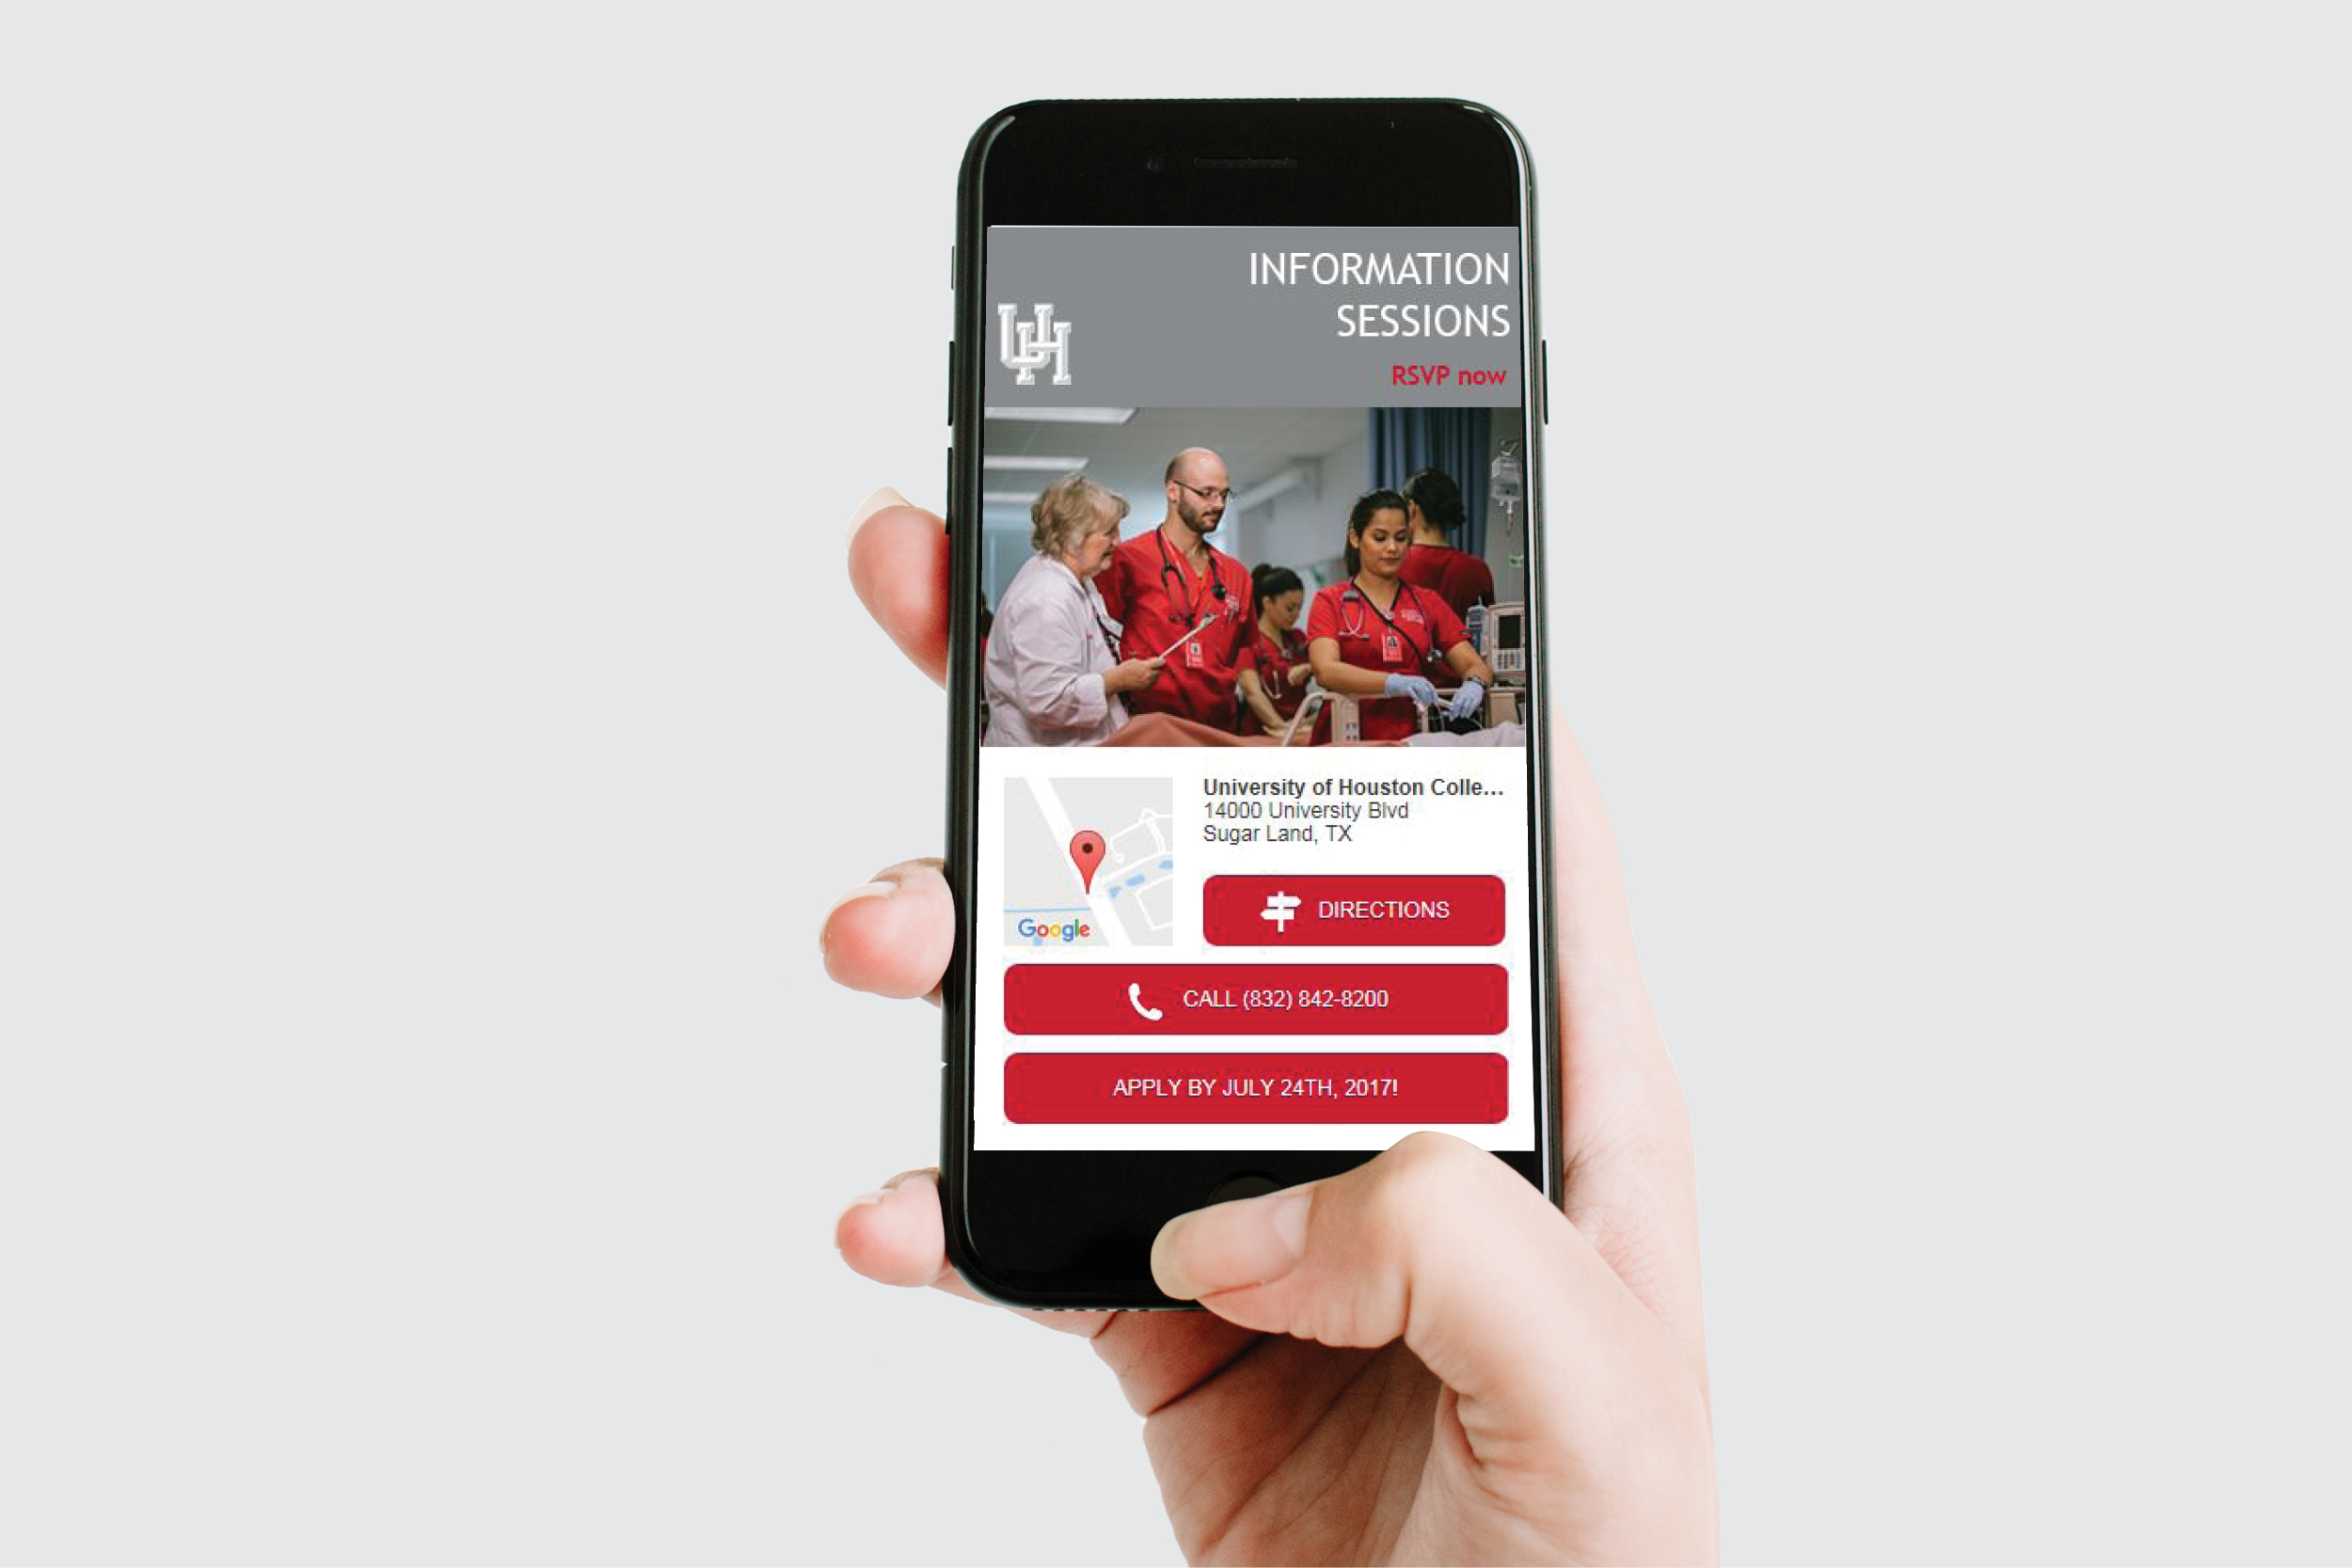 Mobile phone with landing page for University of Houston